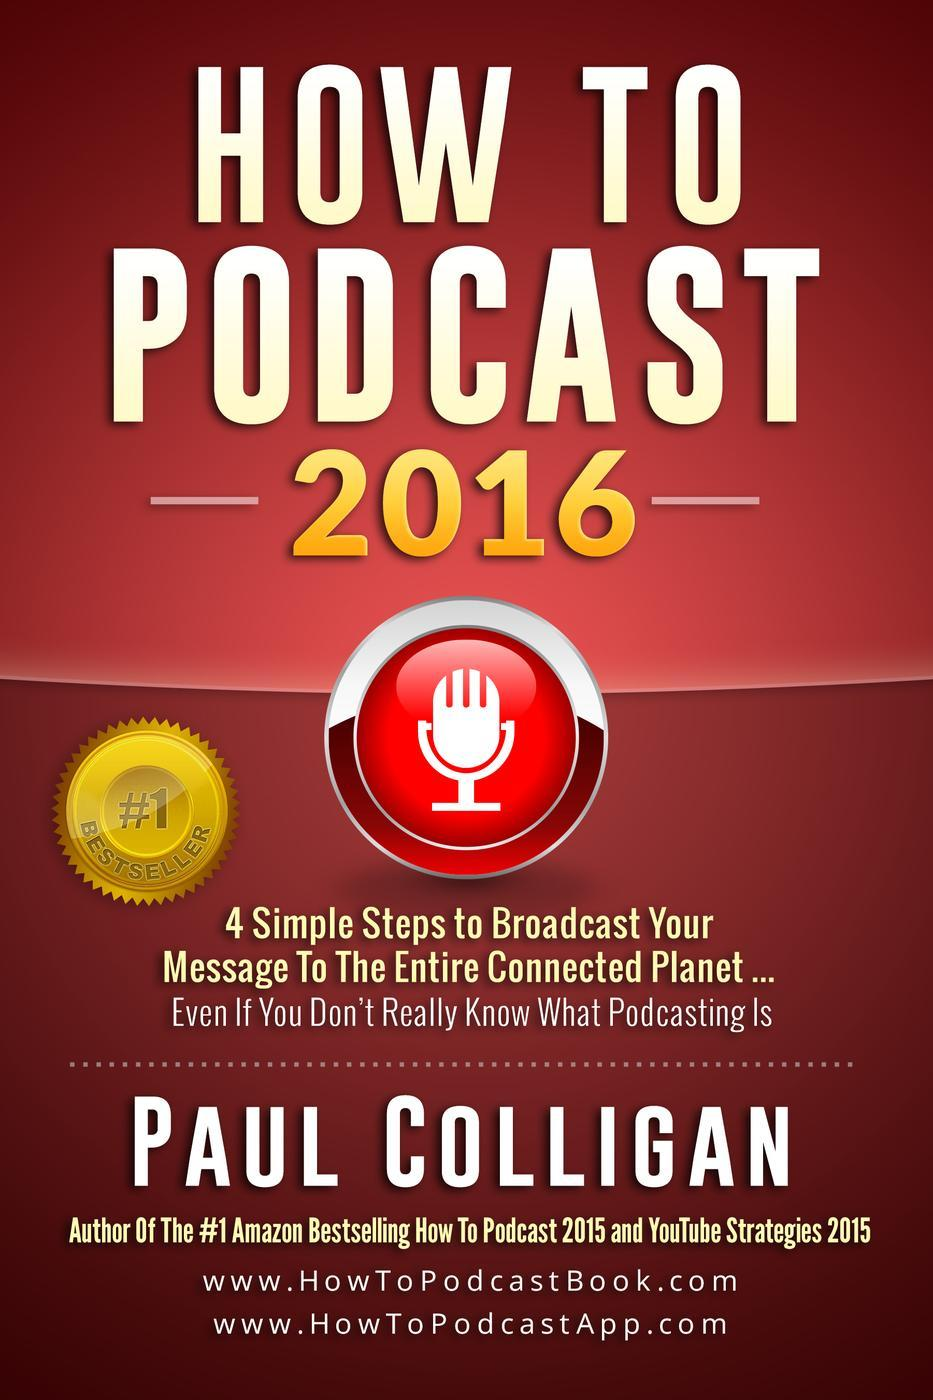 How To Podcast 2016 by Paul Colligan, ISBN: 9781522995562